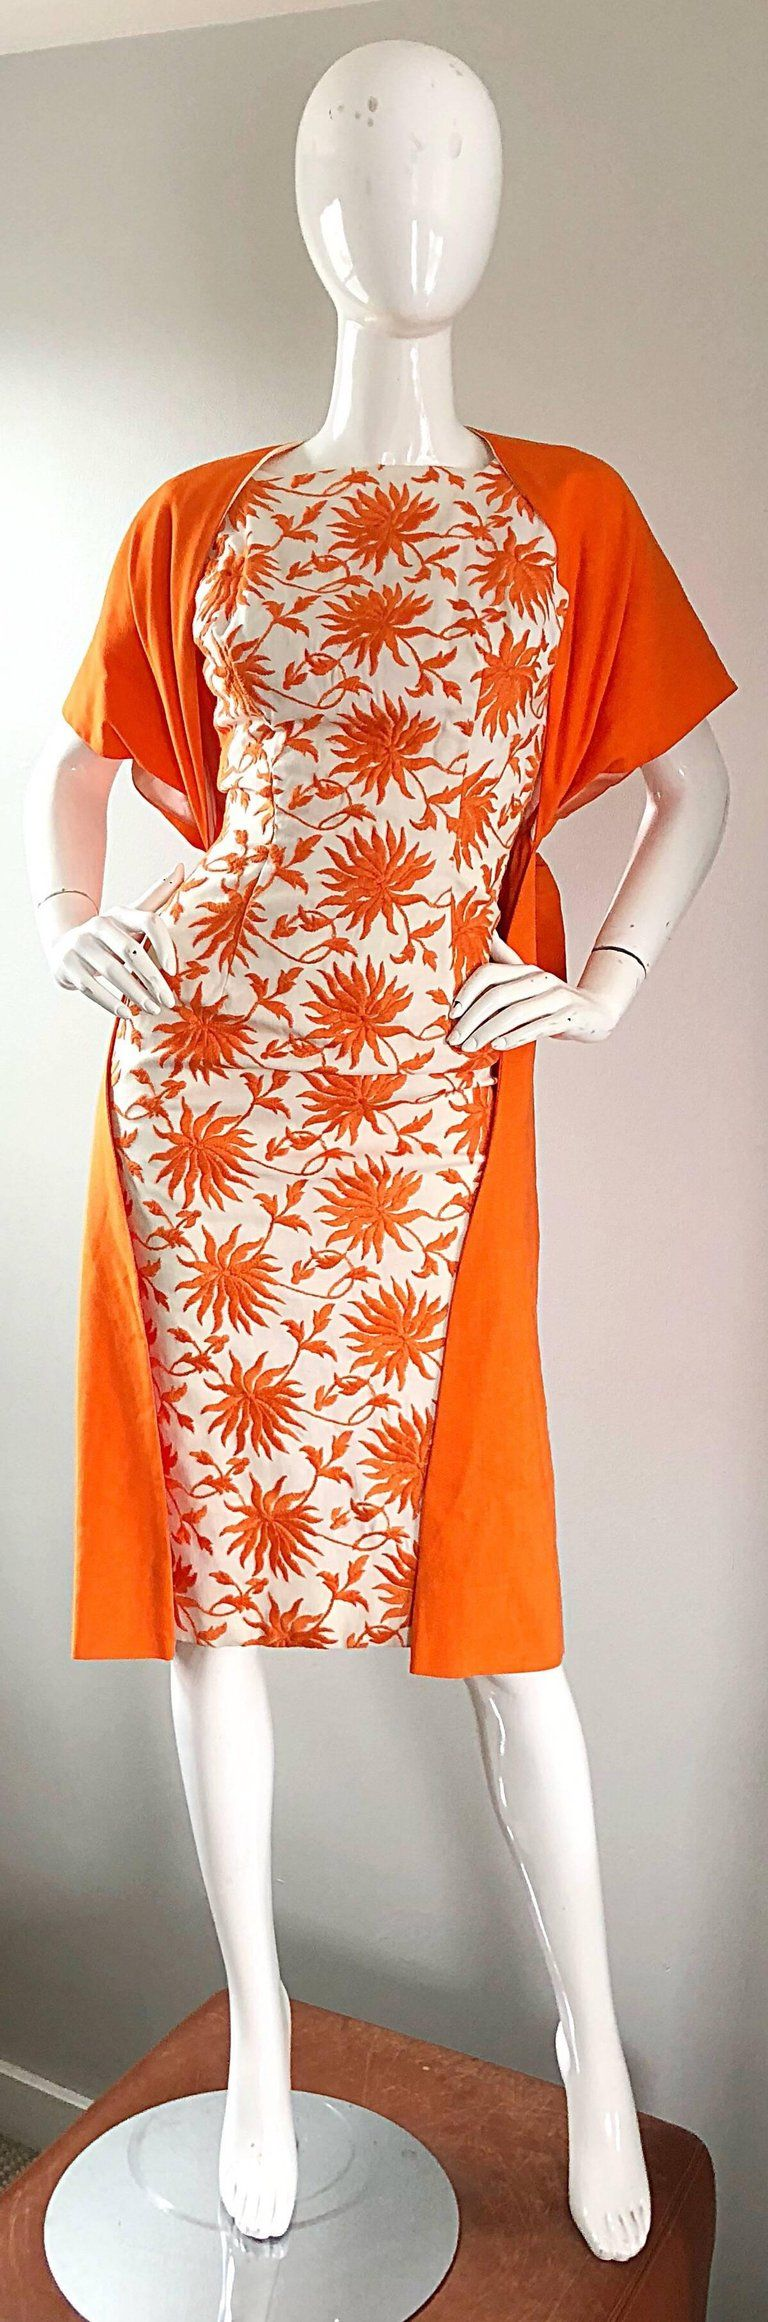 S demi couture orange ivory white vintage s wiggle dress and